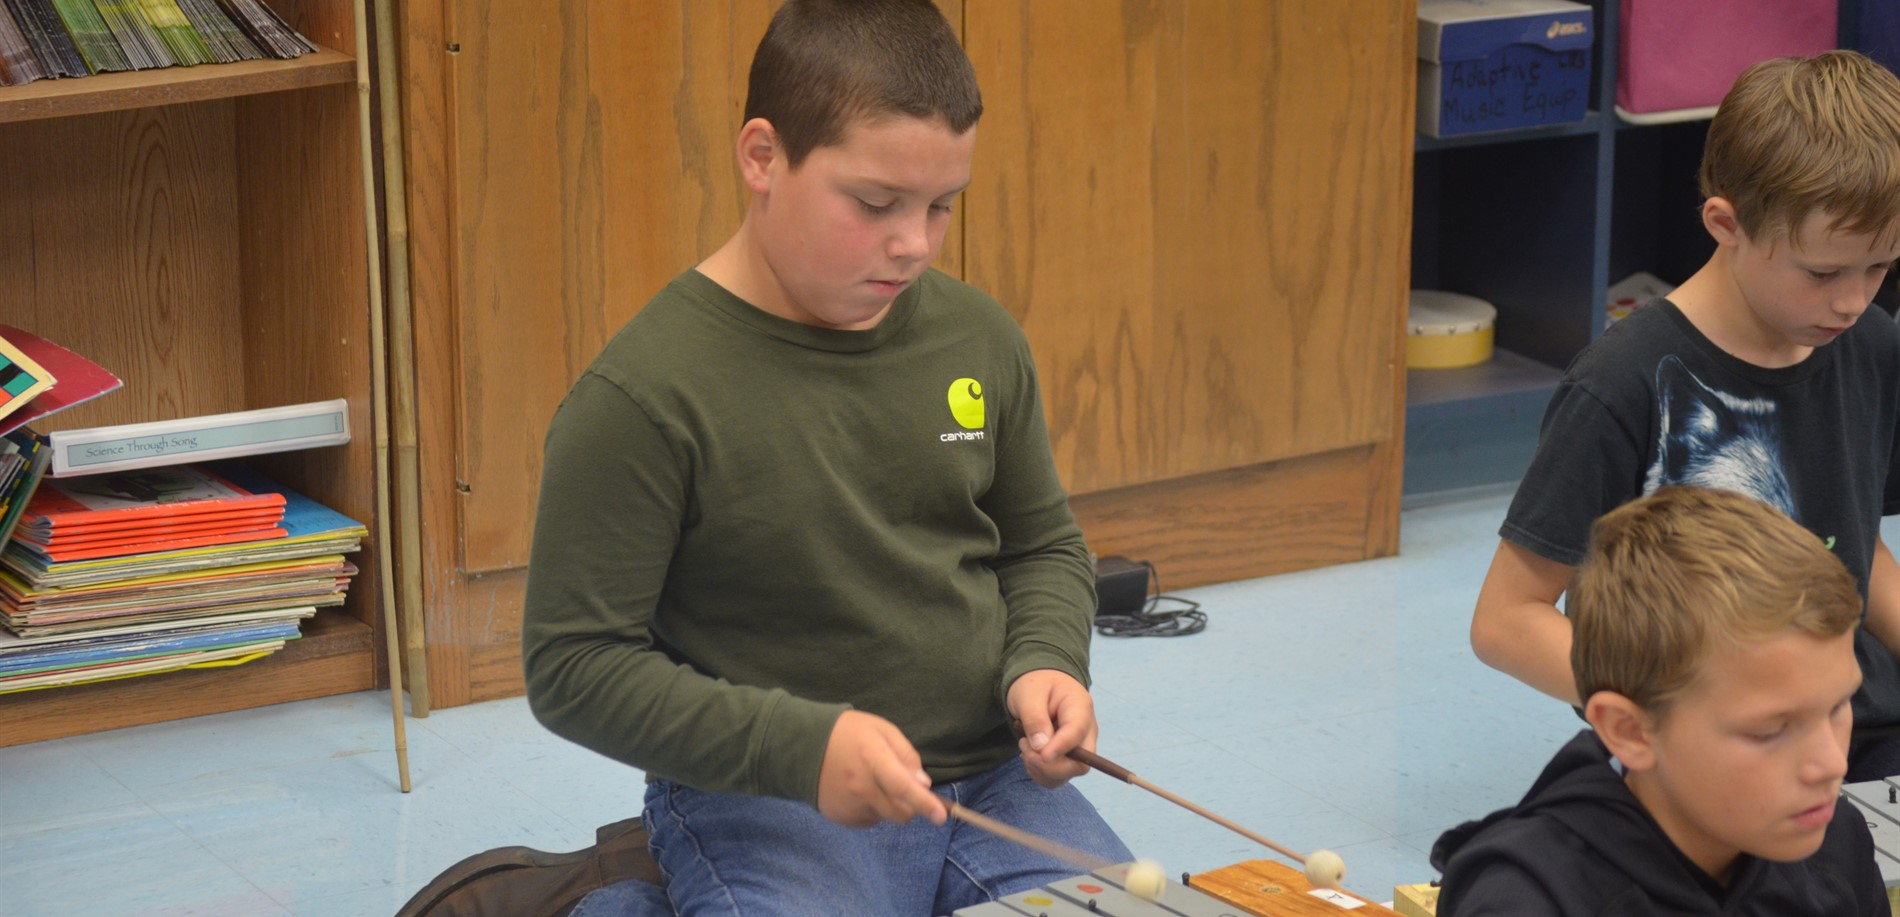 Student playing xylophone